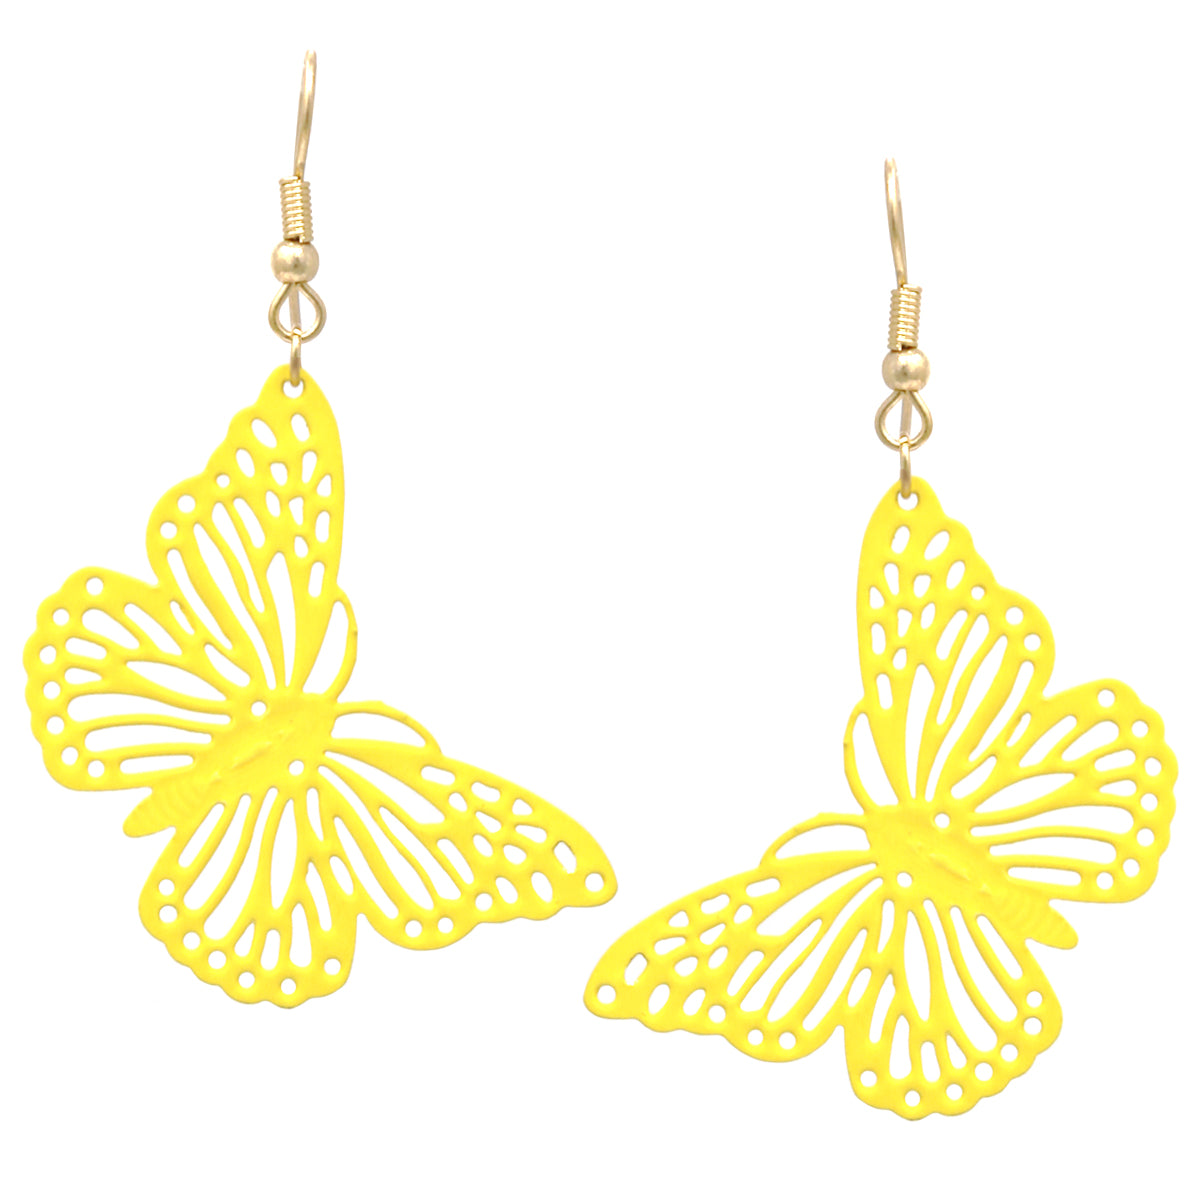 Enamel Coated Butterfly Cutout Drop Earrings